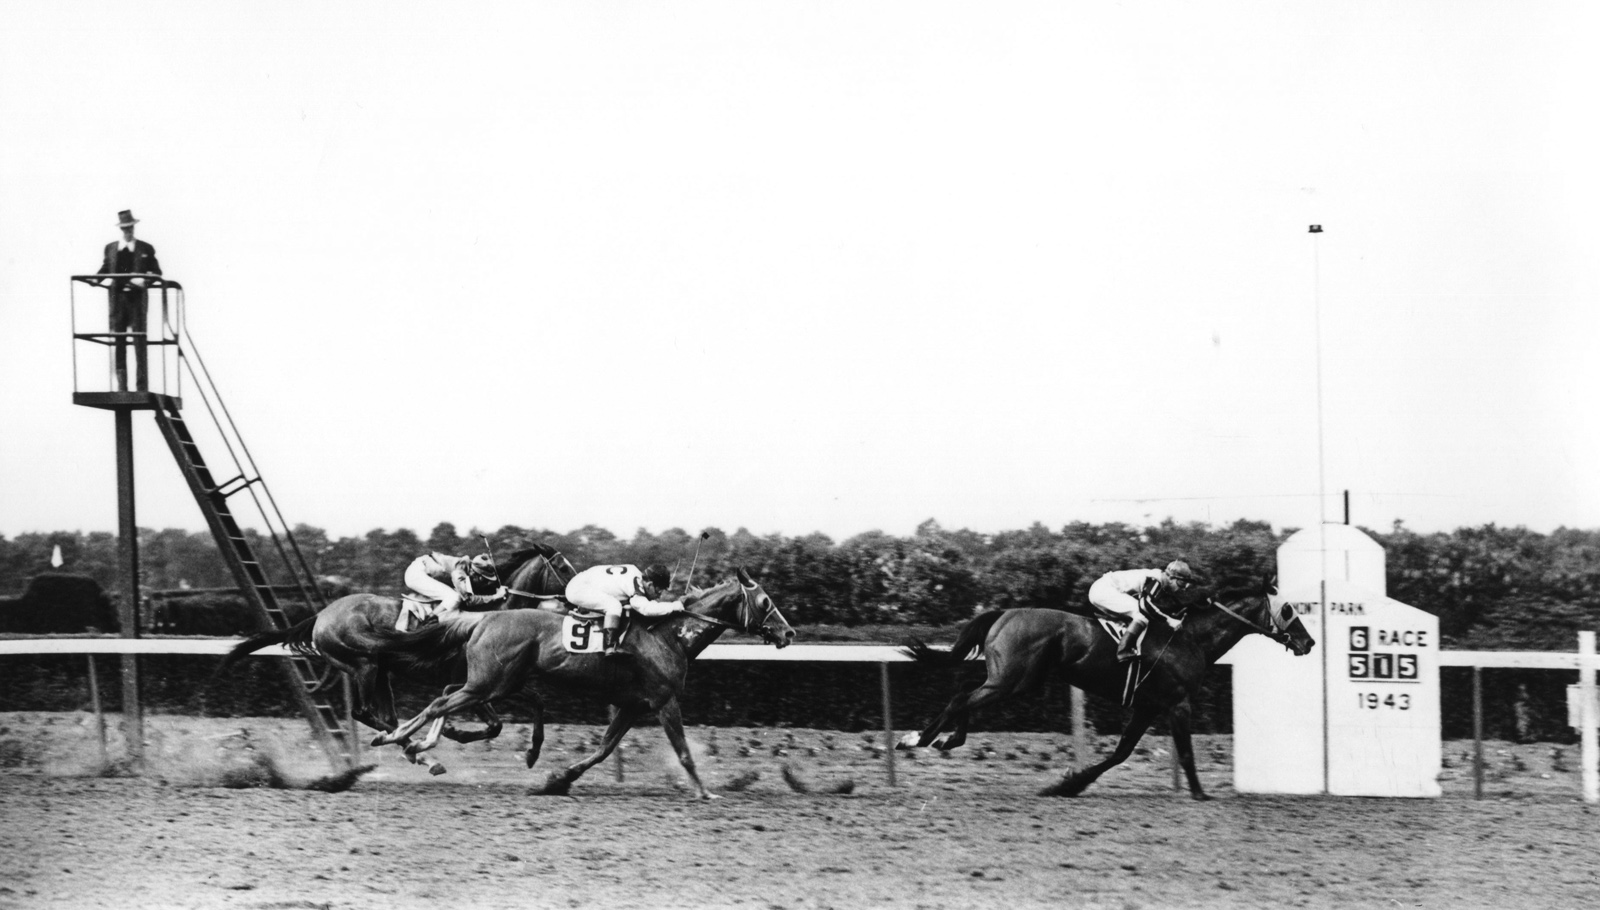 Devil Diver (George Woolf up) winning the 1943 Metropolitan Handicap at Belmont Park (Mike Sirico/Museum Collection)